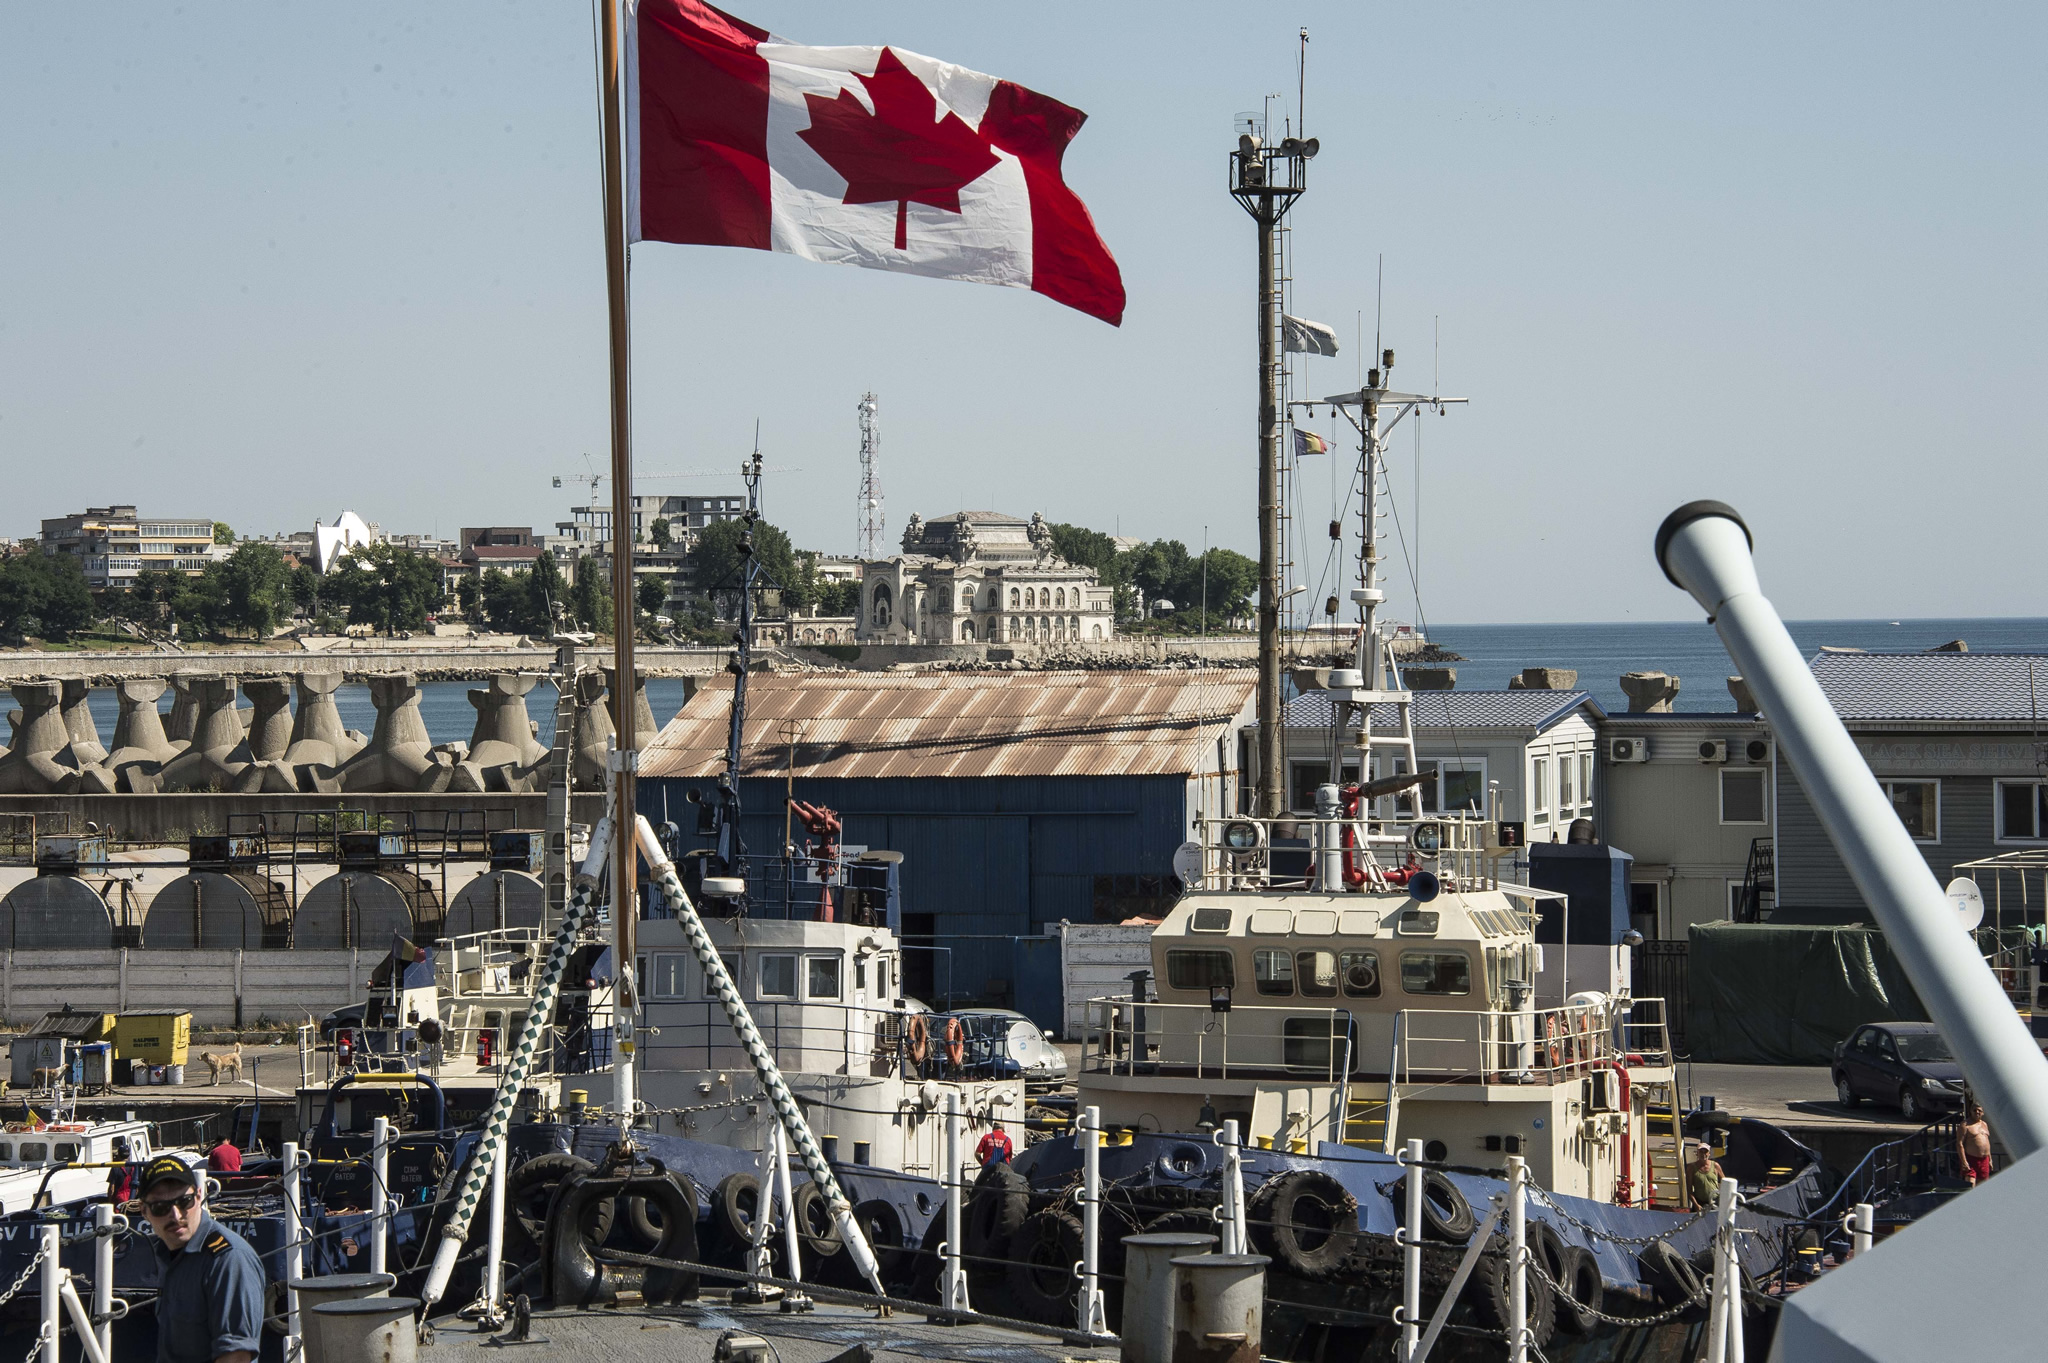 Constanta Harbour, Romania. 22 July 2016 – Her Majesty's Canadian Ship (HMCS) CHARLOTTETOWN is berthed at Constanta Harbour, Romania after participating in Exercise SEA SHIELD during OPERATION REASSURANCE. (Photo: Cpl Blaine Sewell, Formation Imaging Services)